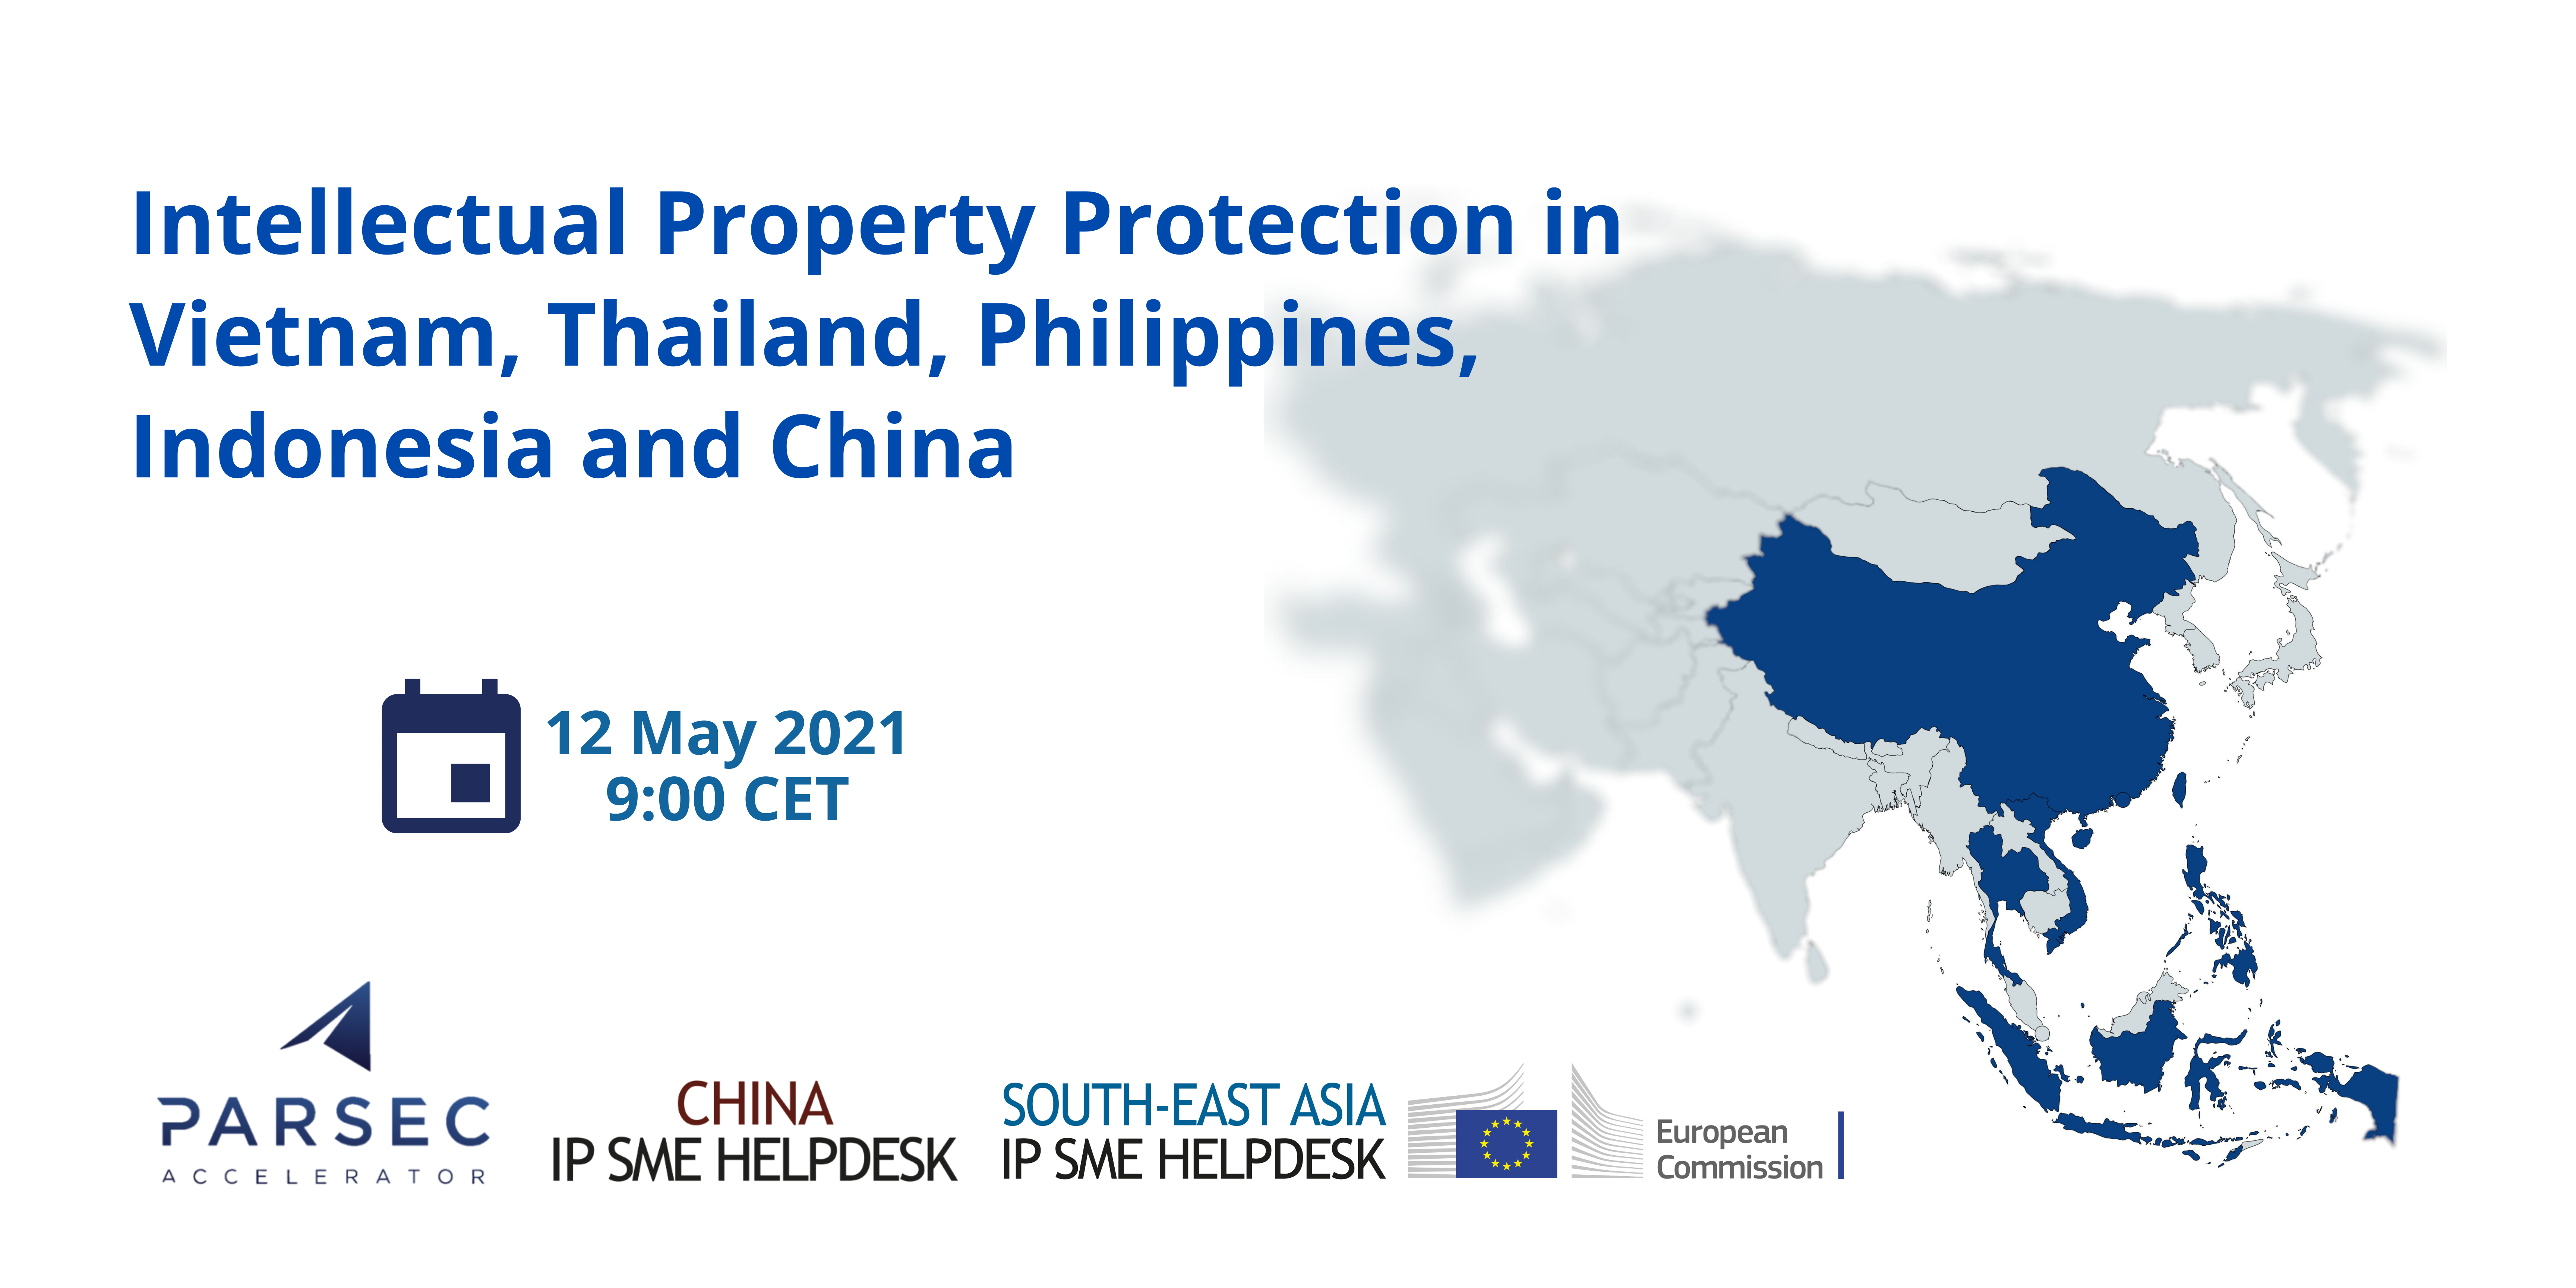 Intellectual Property Protection in Vietnam, Thailand, Philippines and China